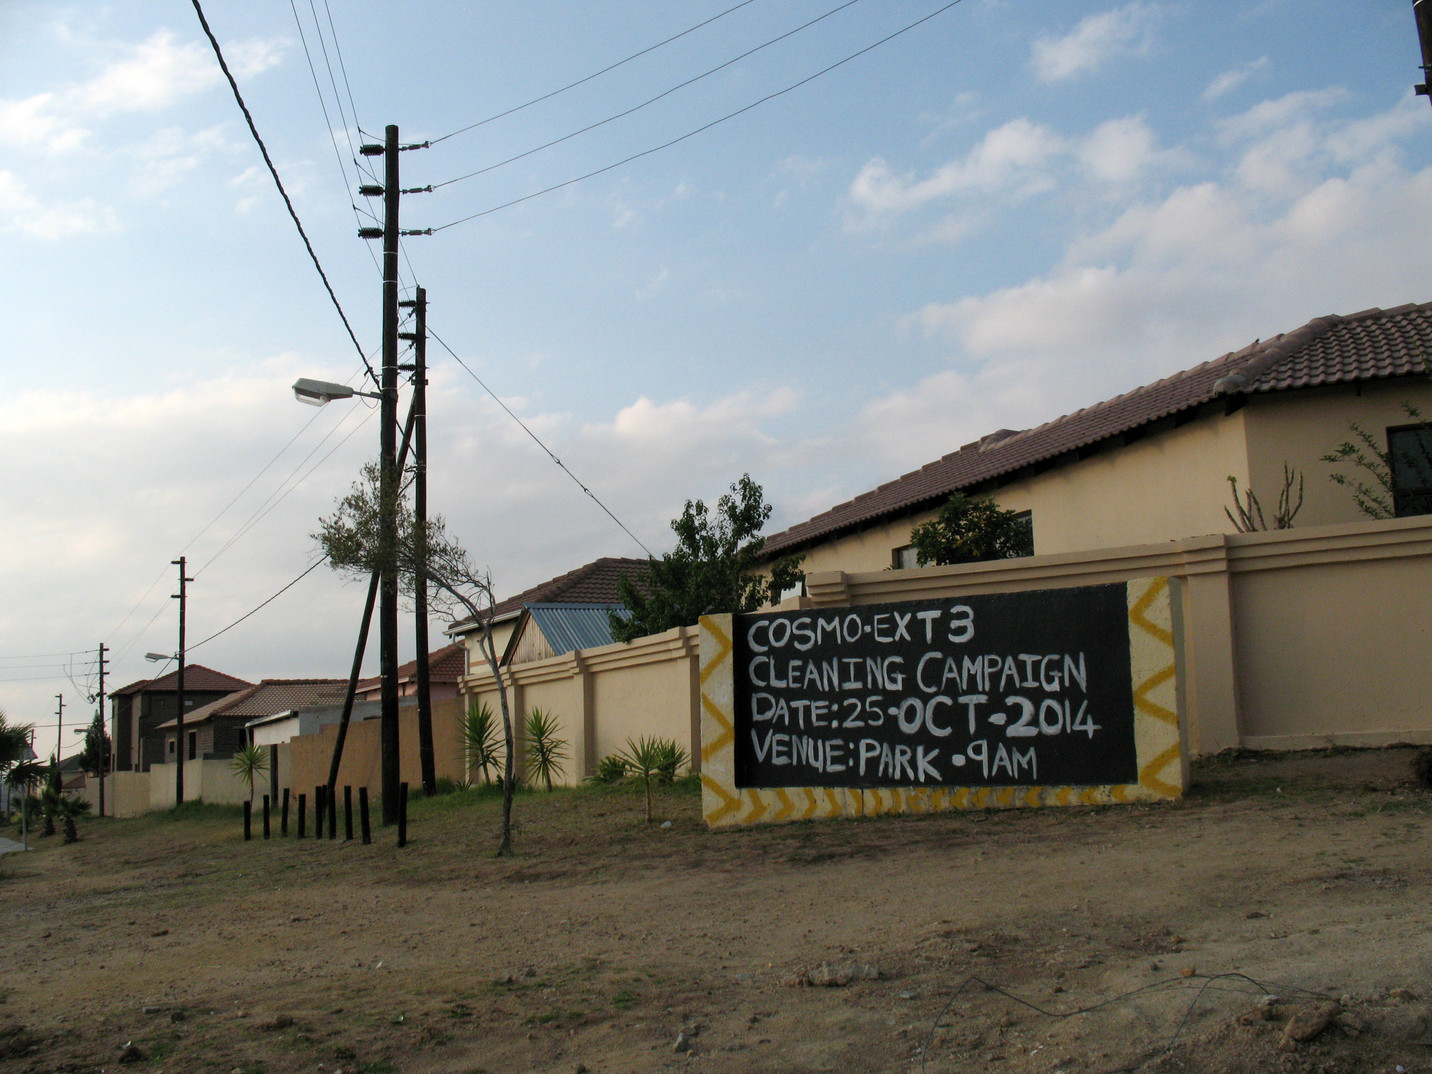 PARTICIPATION WALL, COSMO CITY